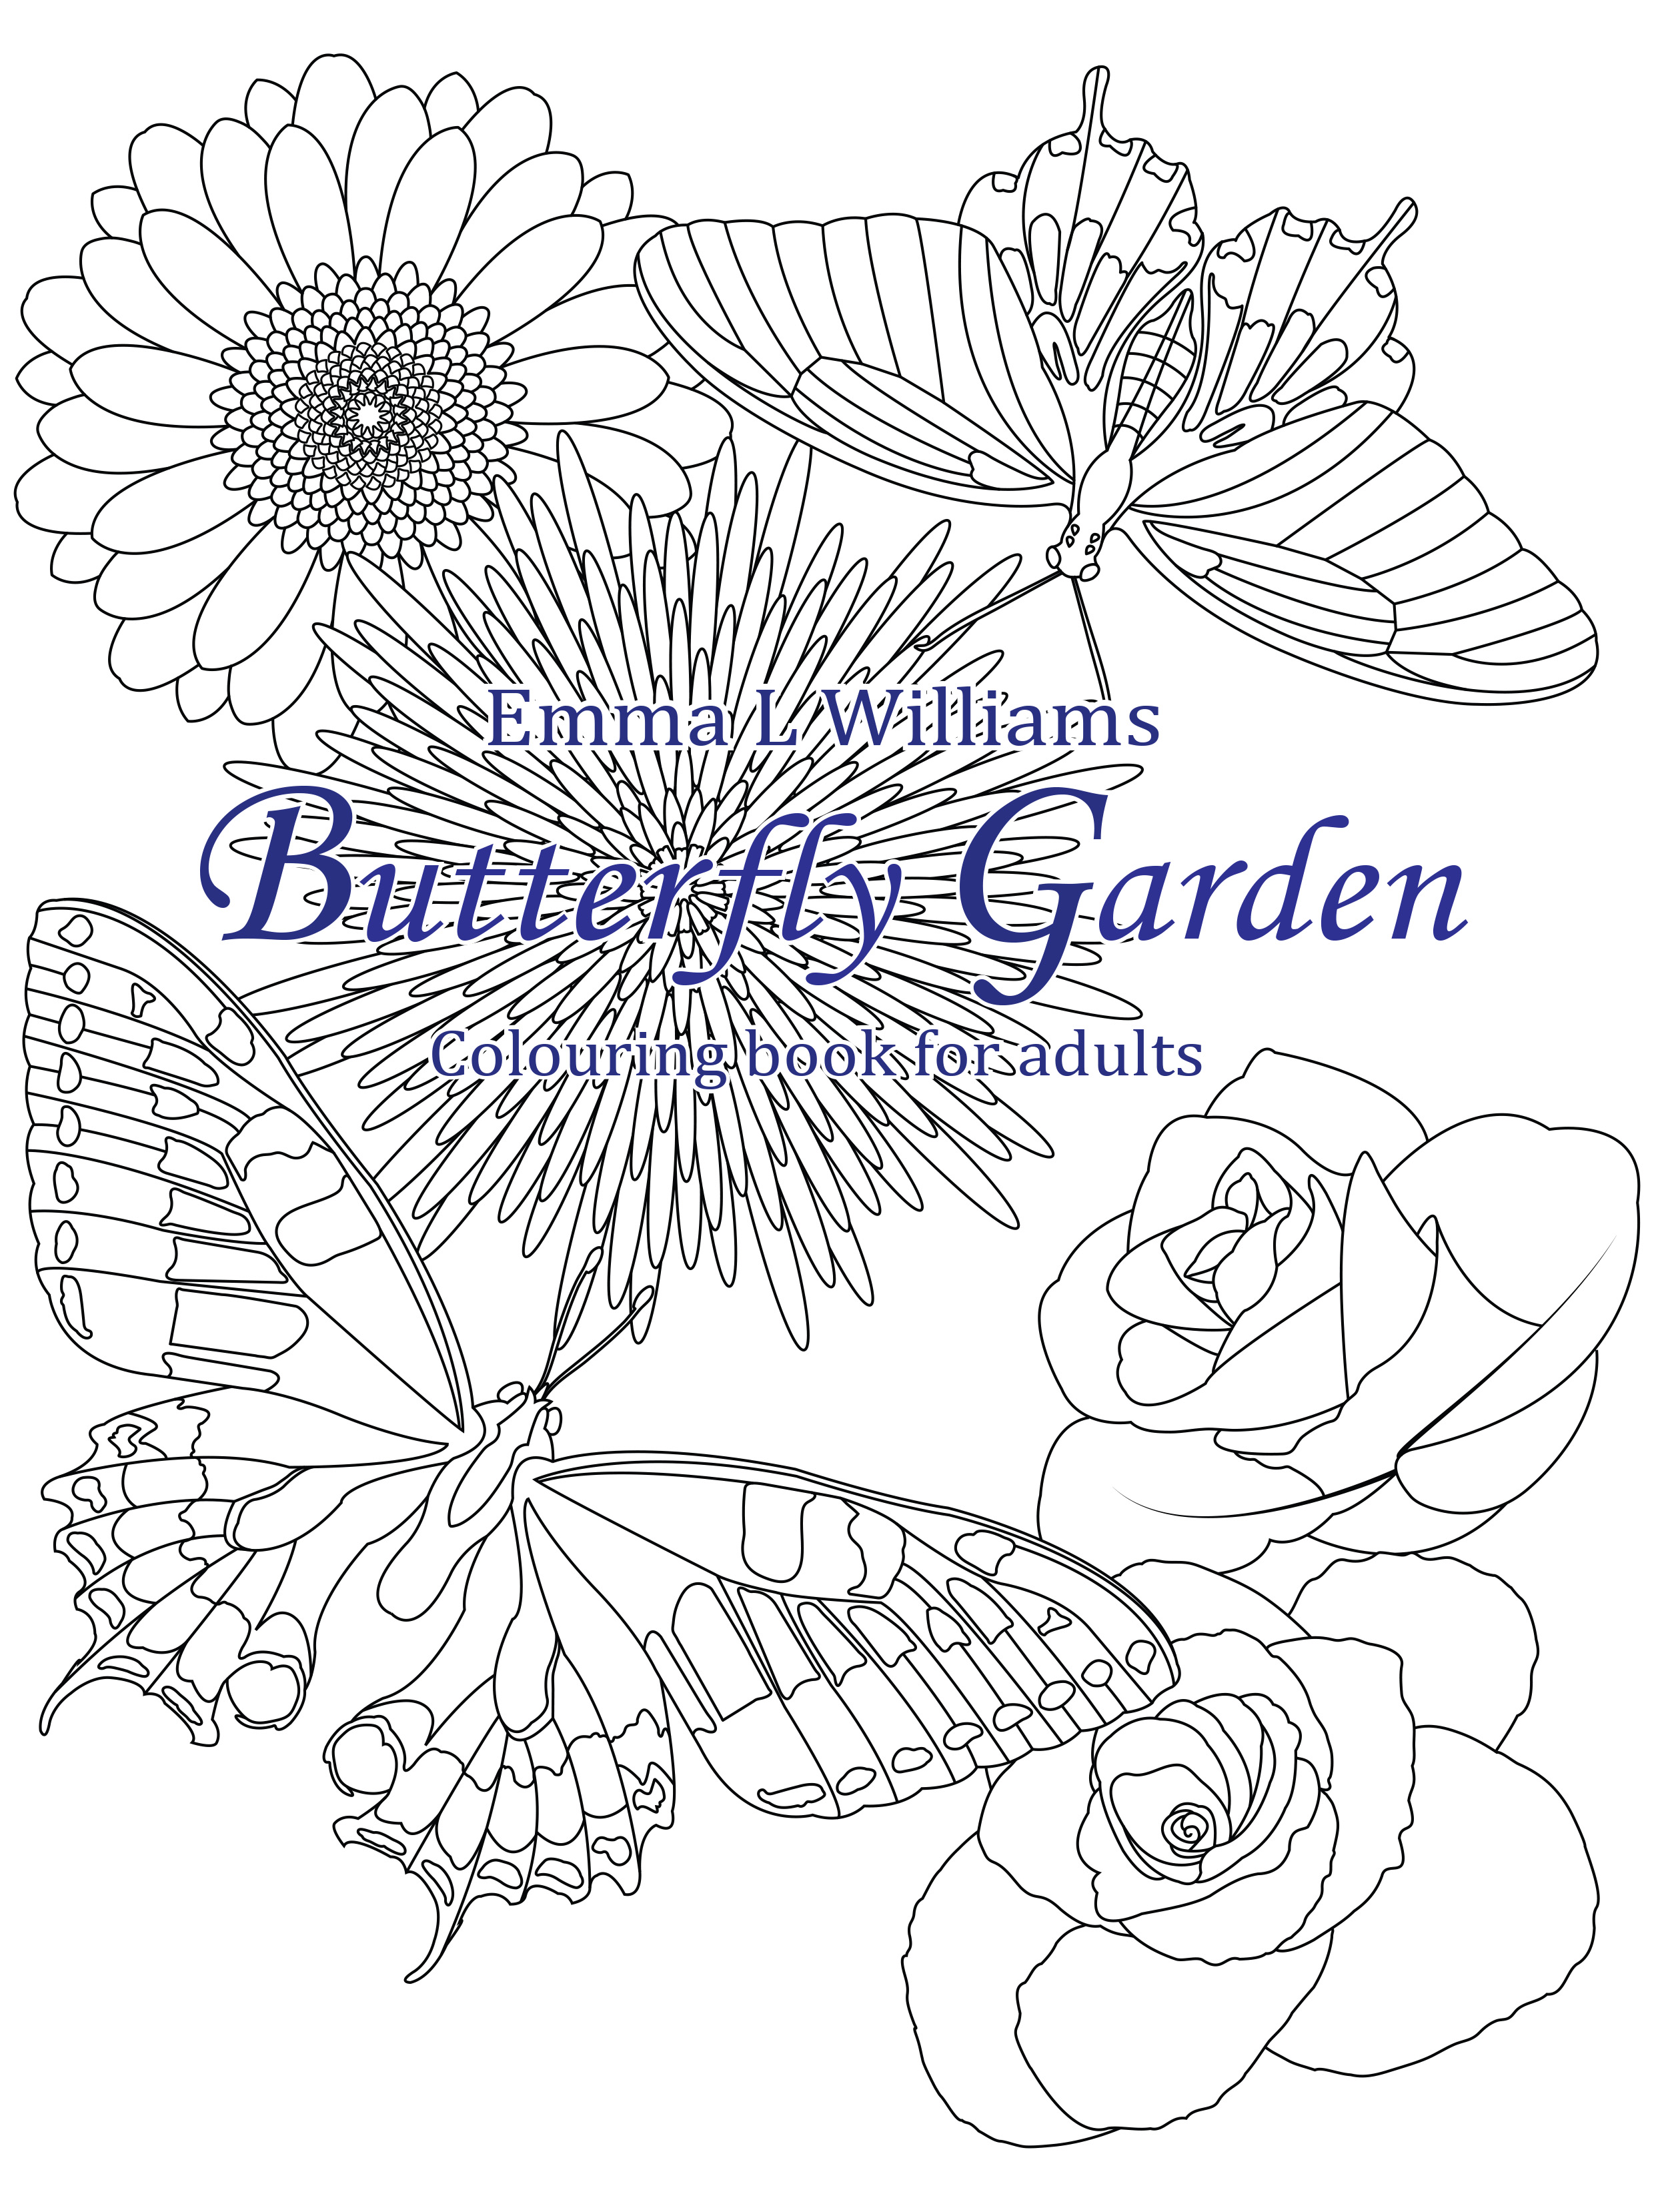 Butterfly Garden Butterflies Insects Adult Coloring Pages